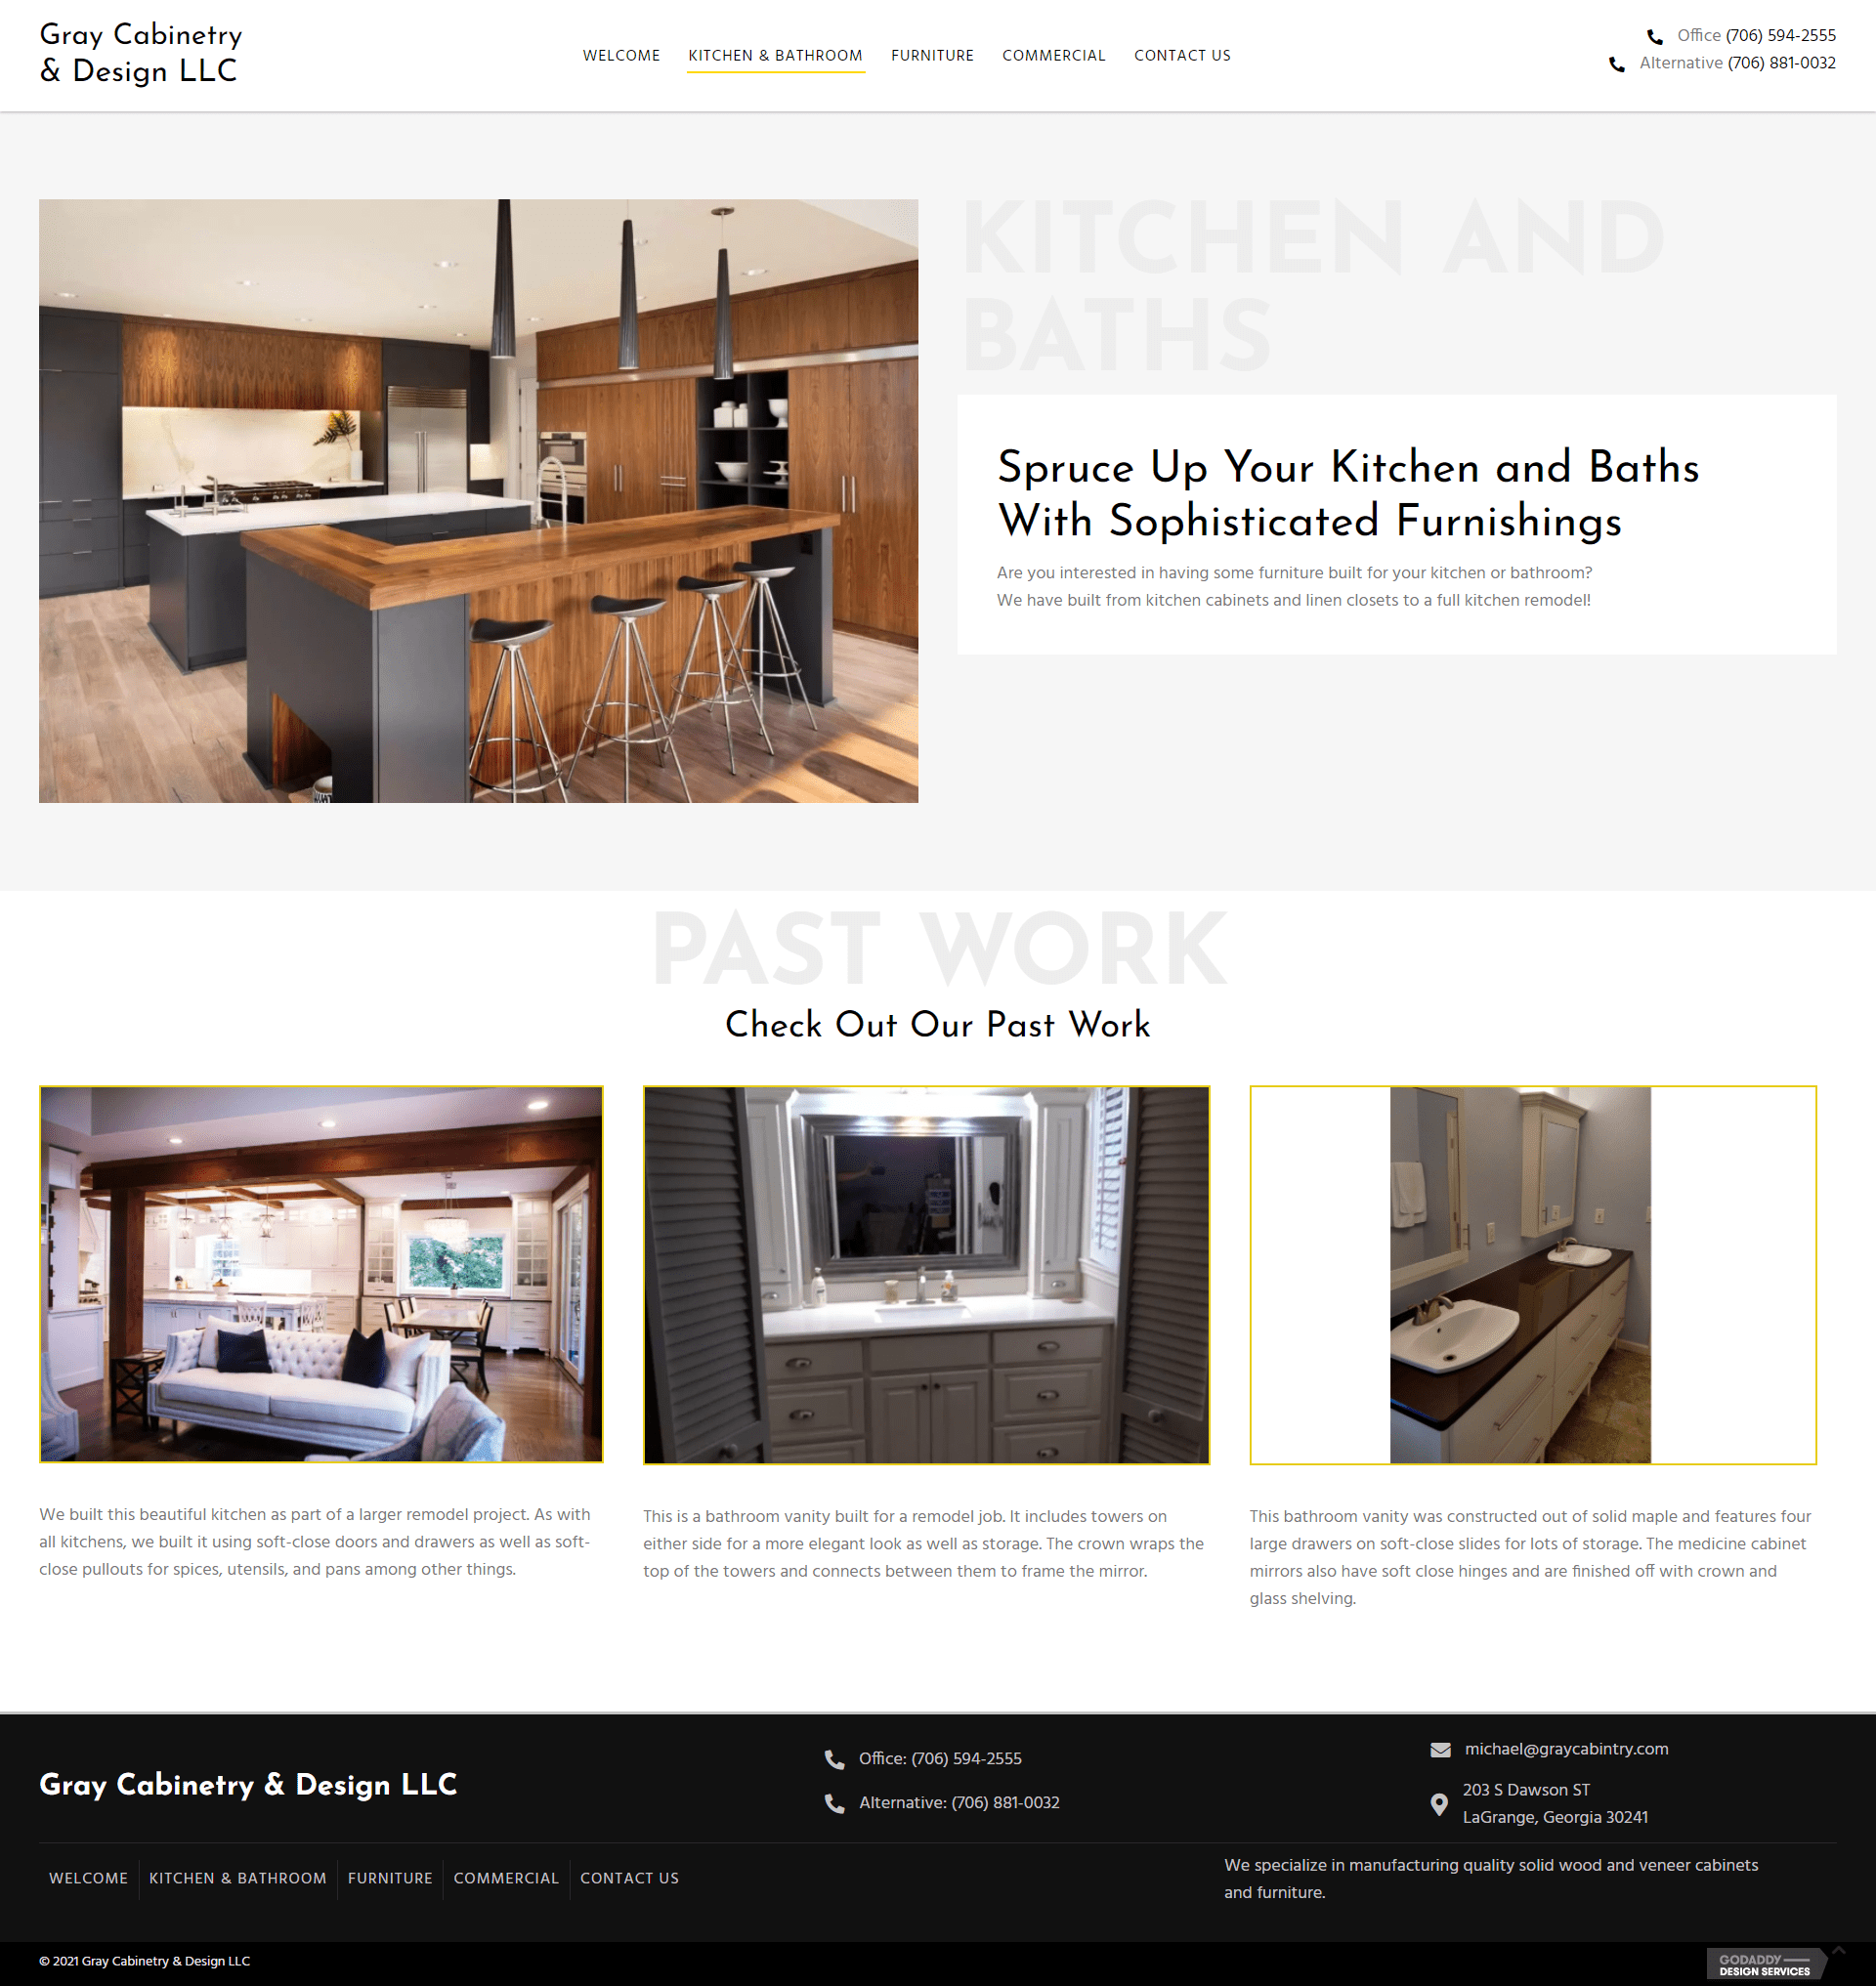 Gray Cabinetry & Design LLC Kitchen Page